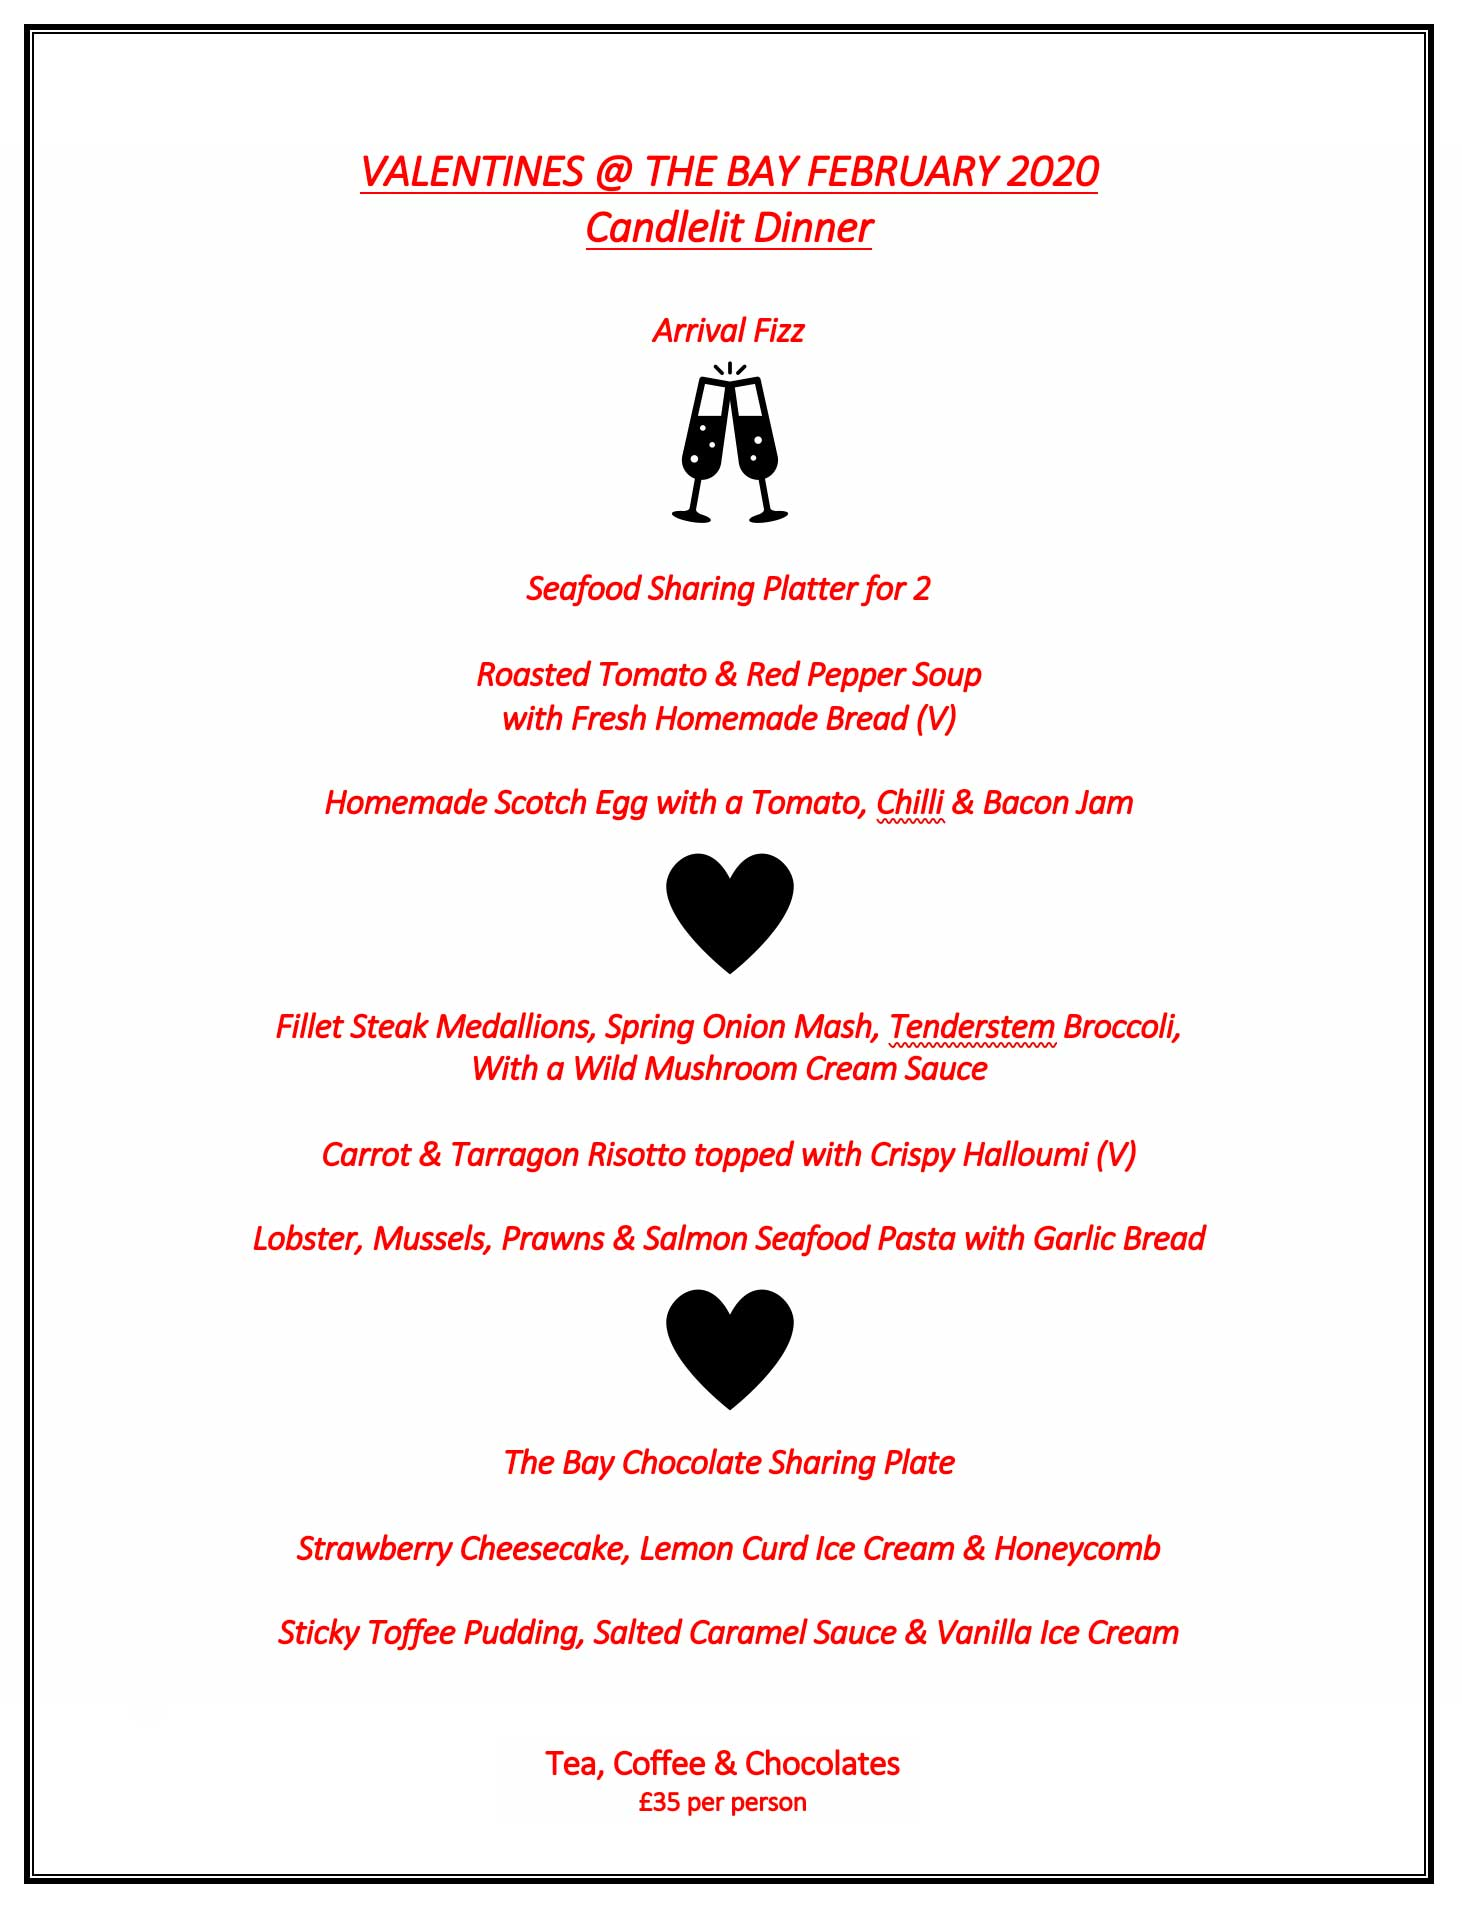 Valentine's Day Menu 2020 @ The Bay